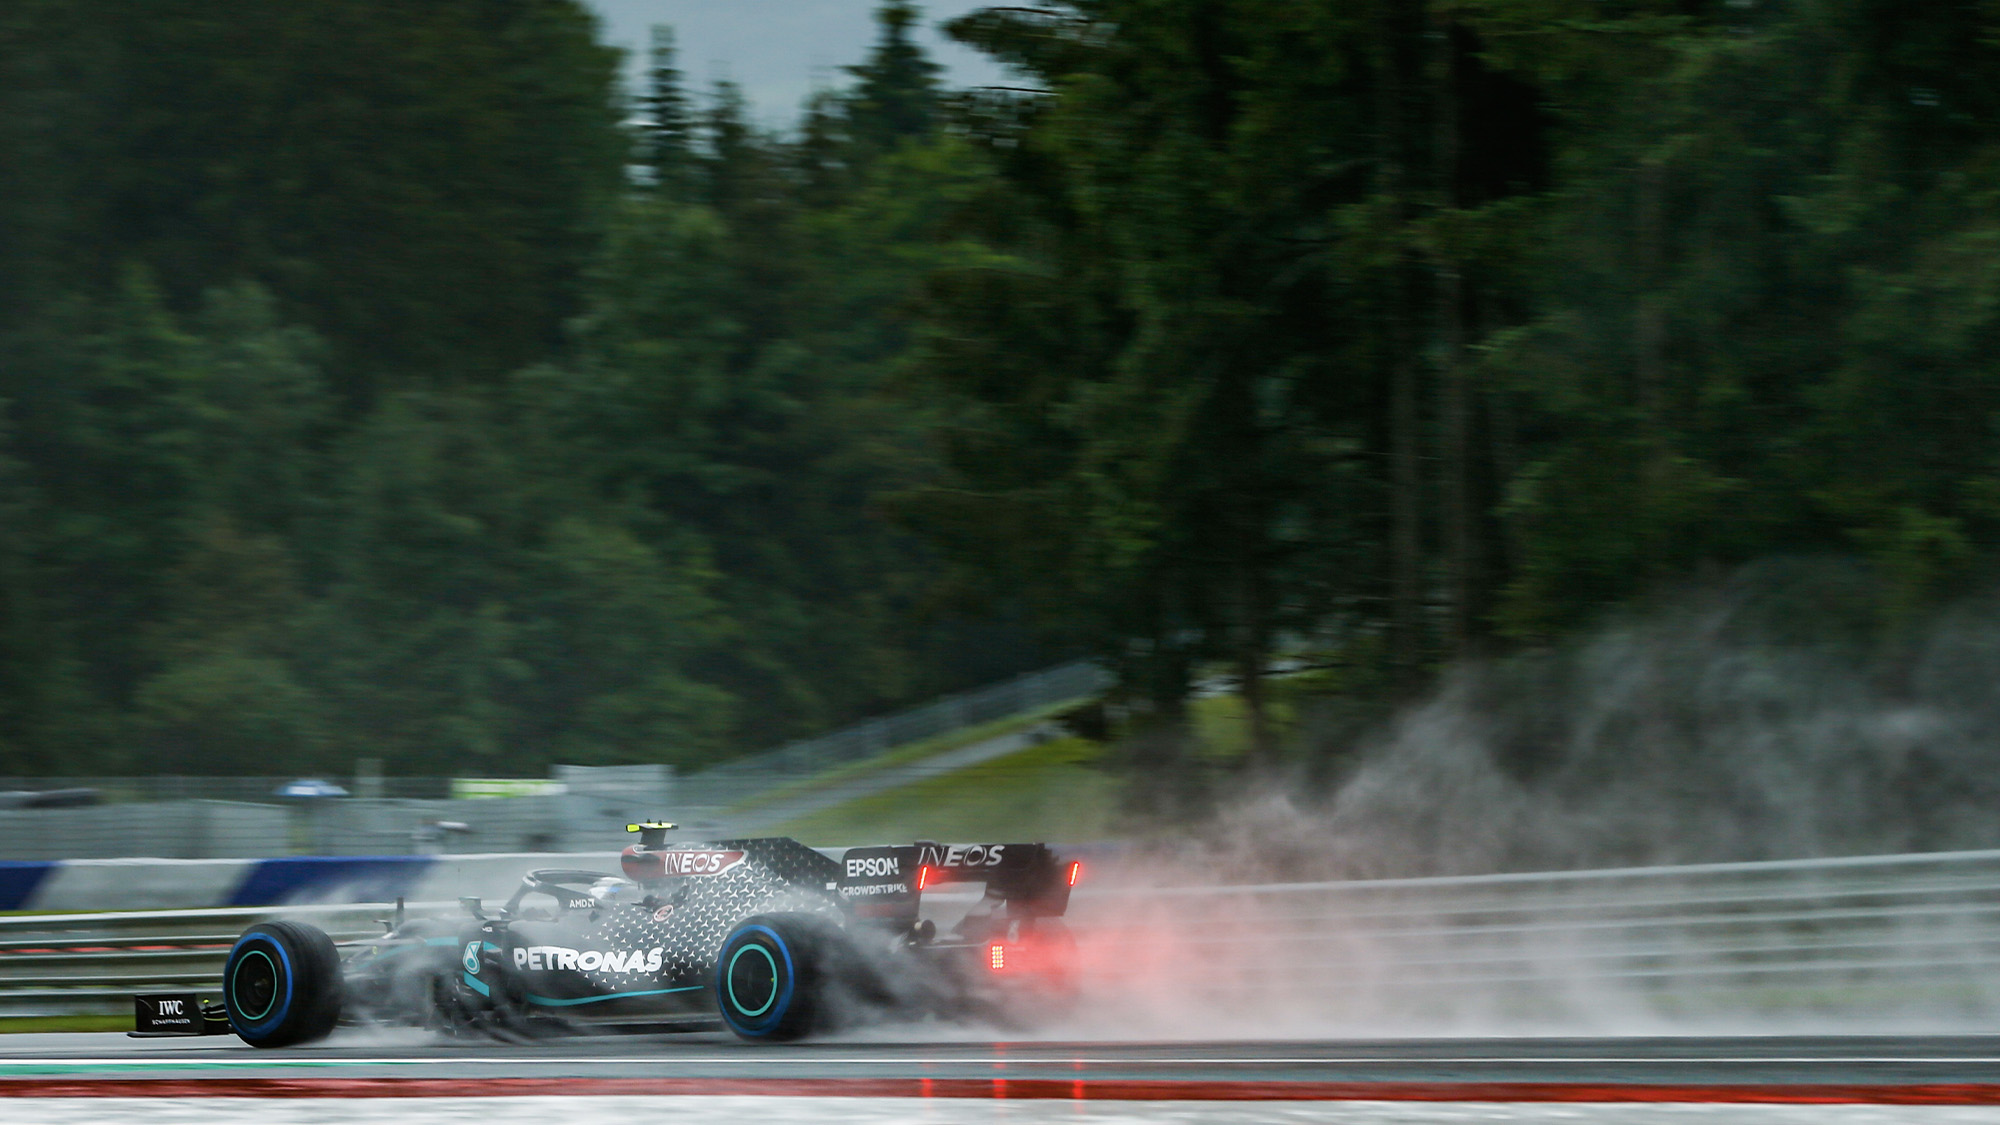 Valtteri Bottas trails water spray during qualifying for the 2020 F1 Styrian Grand Prix at the Red Bull Ring